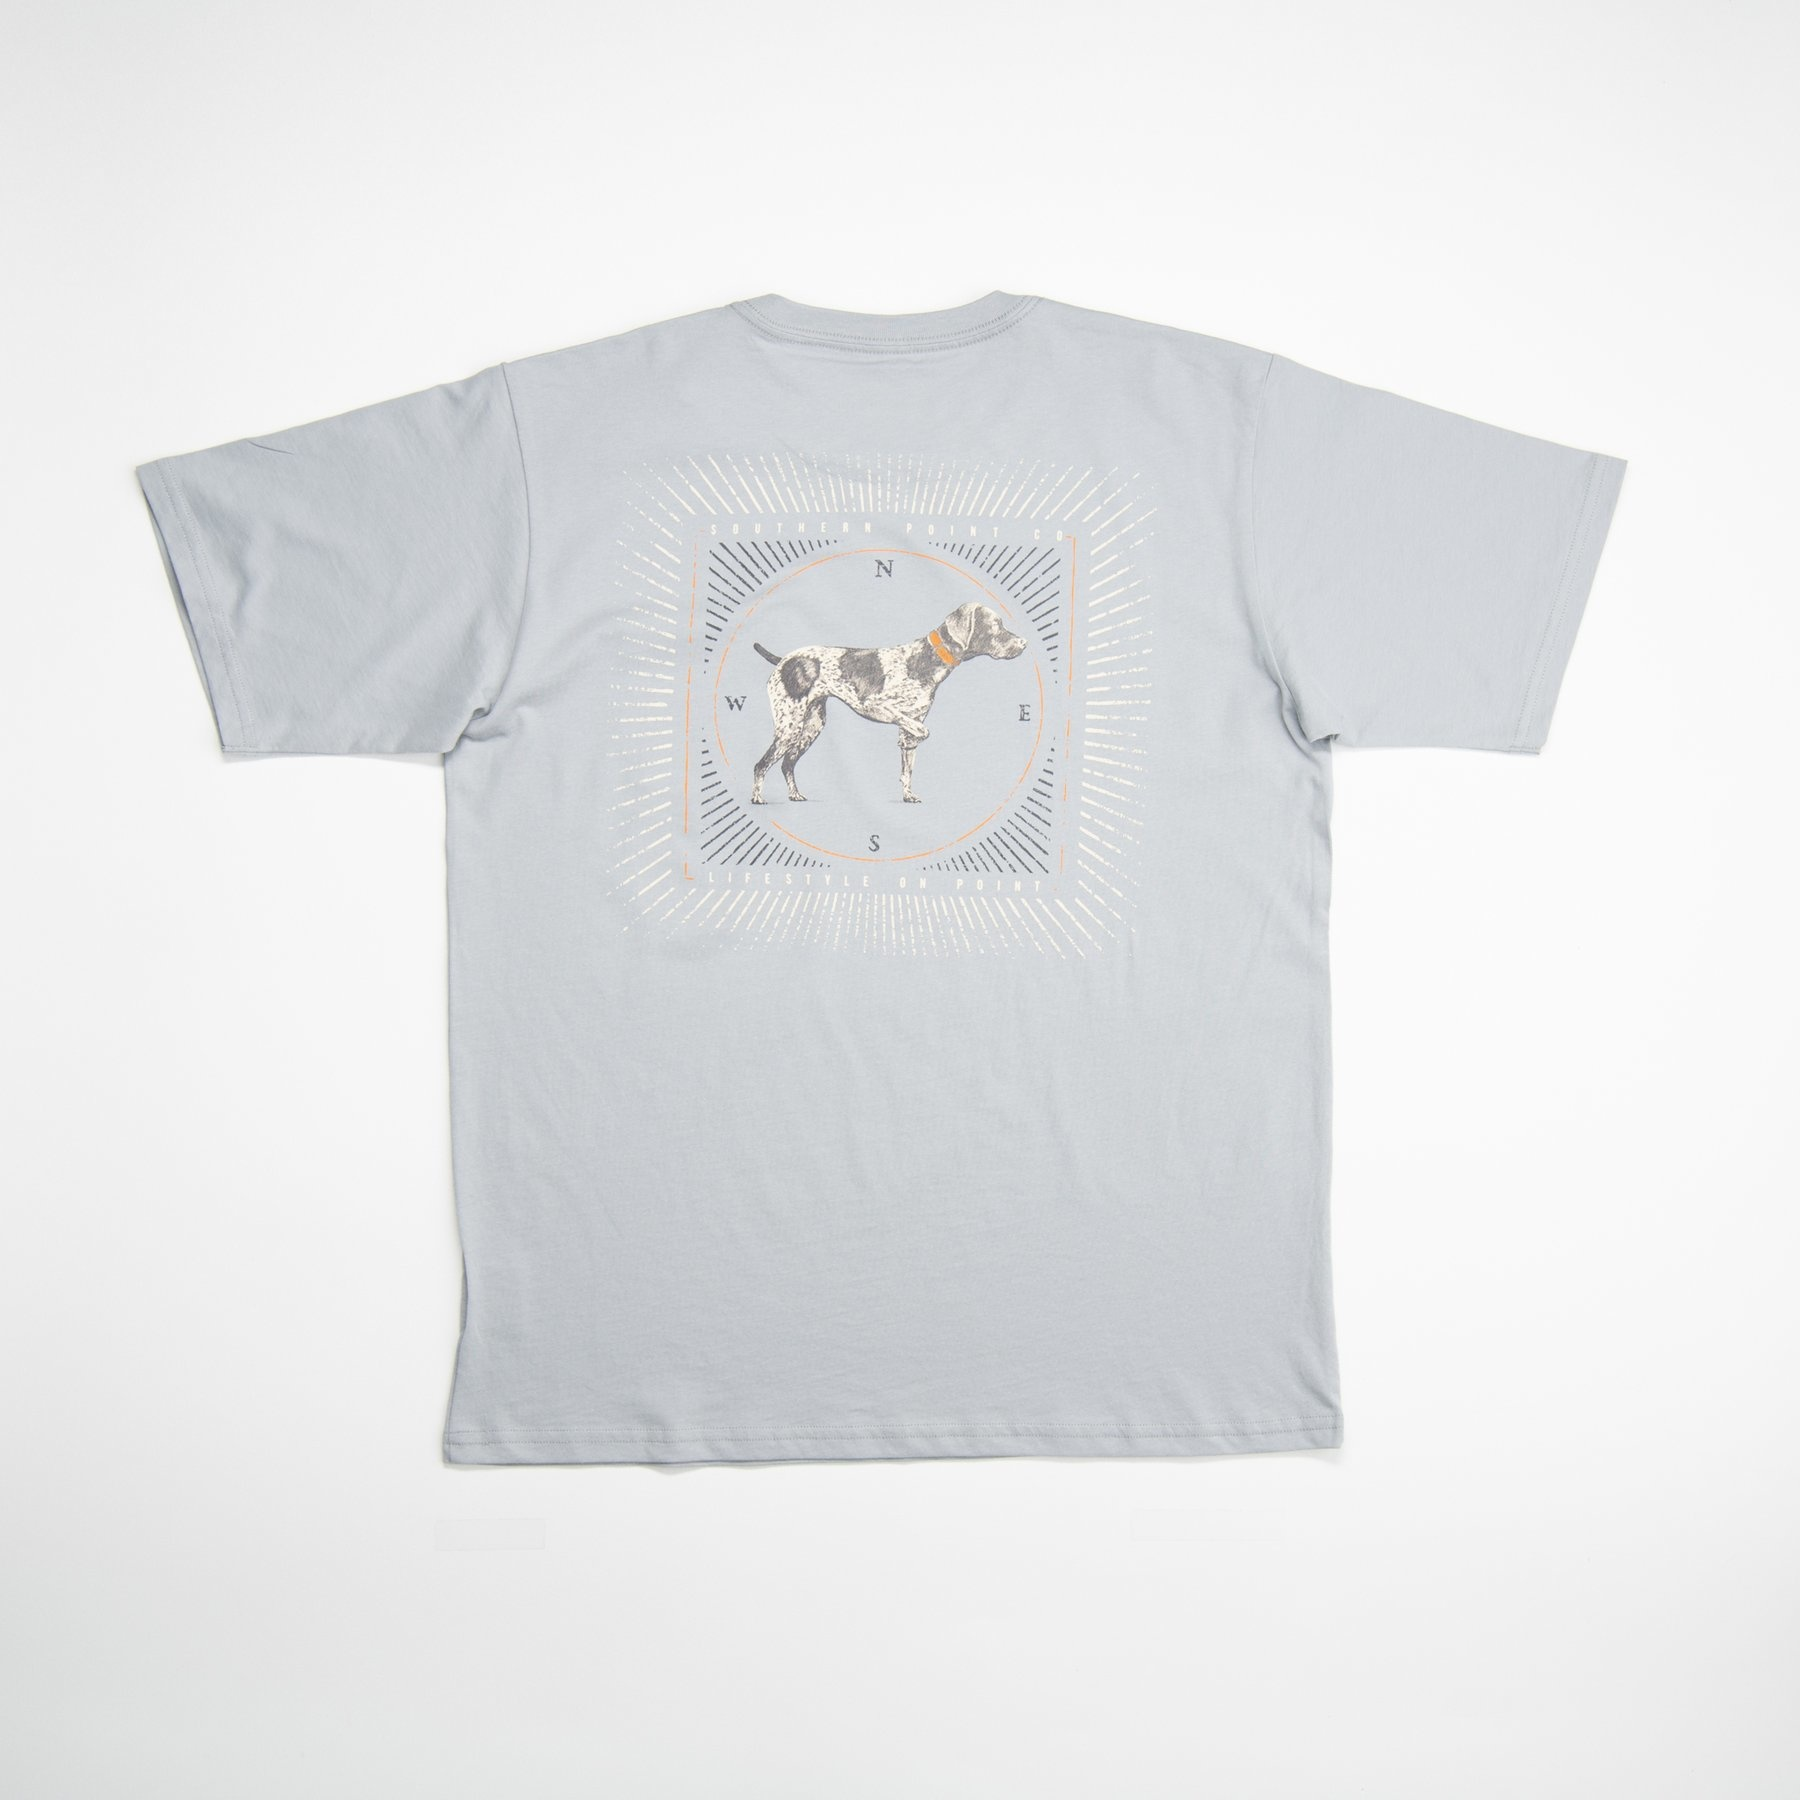 Southern Point Co. Compass Point Tee